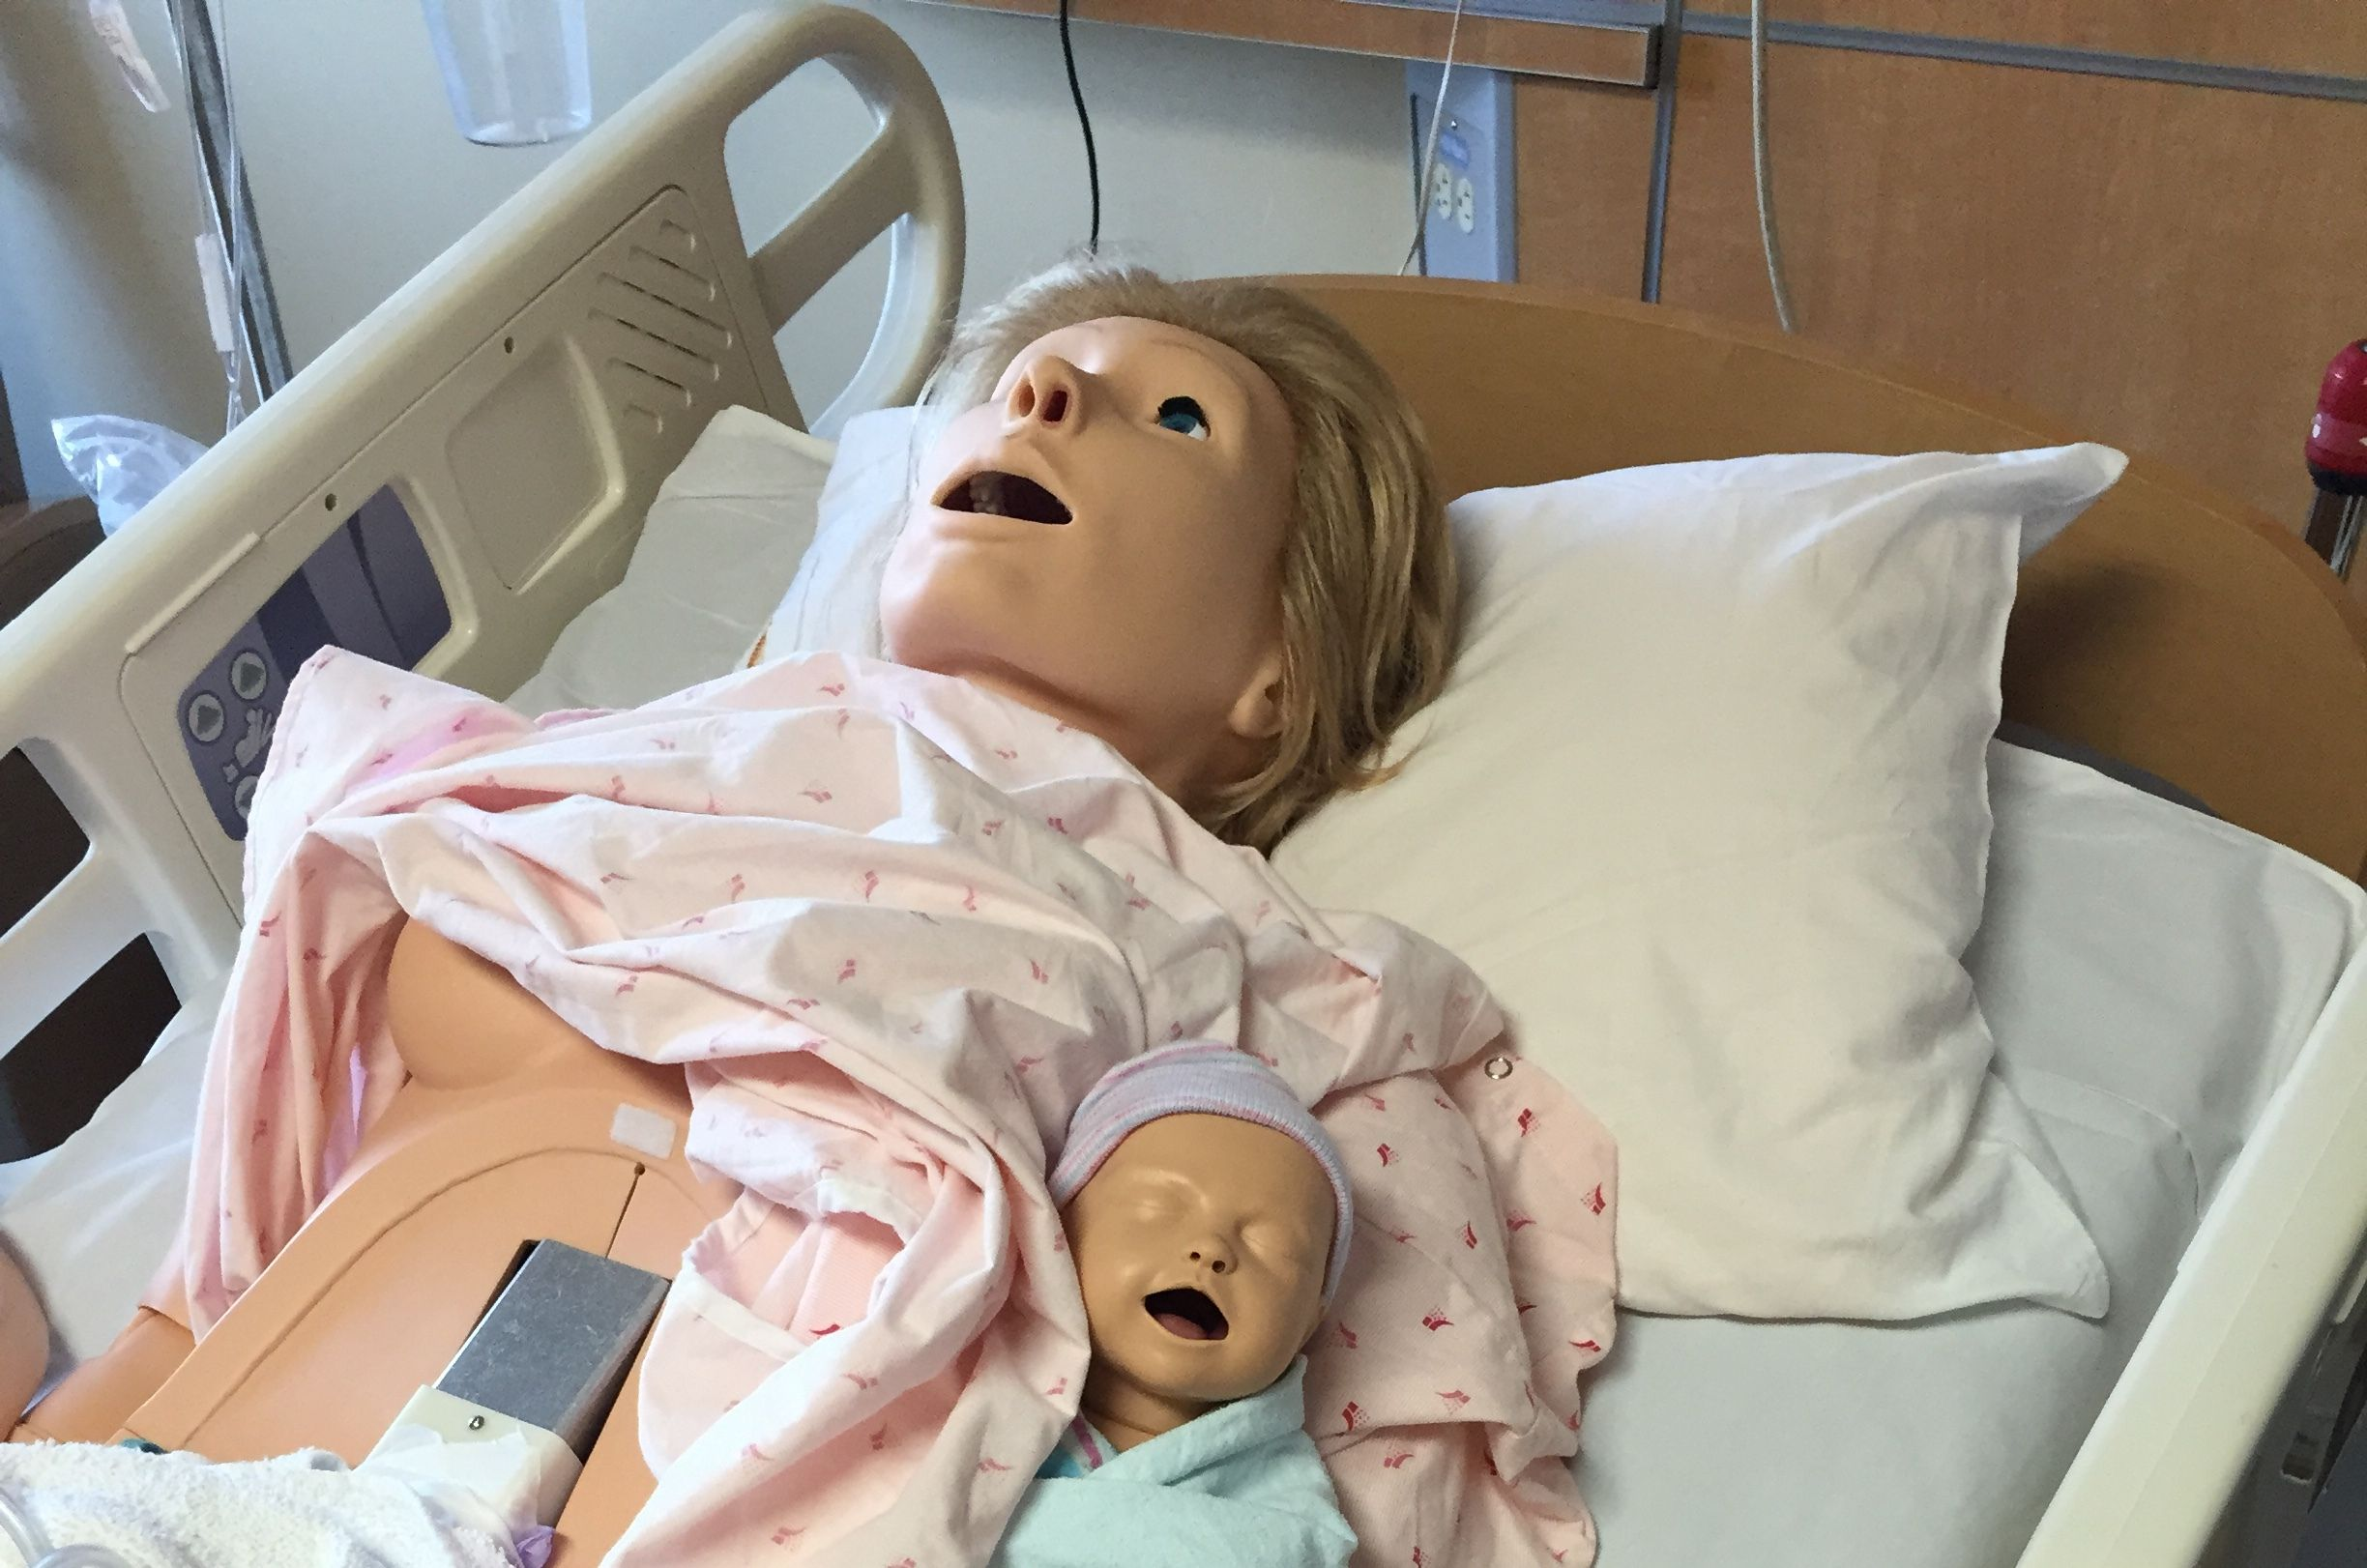 Day in the (hospital) life: Saving Noelle, a 'high-fidelity tetherless human patient'